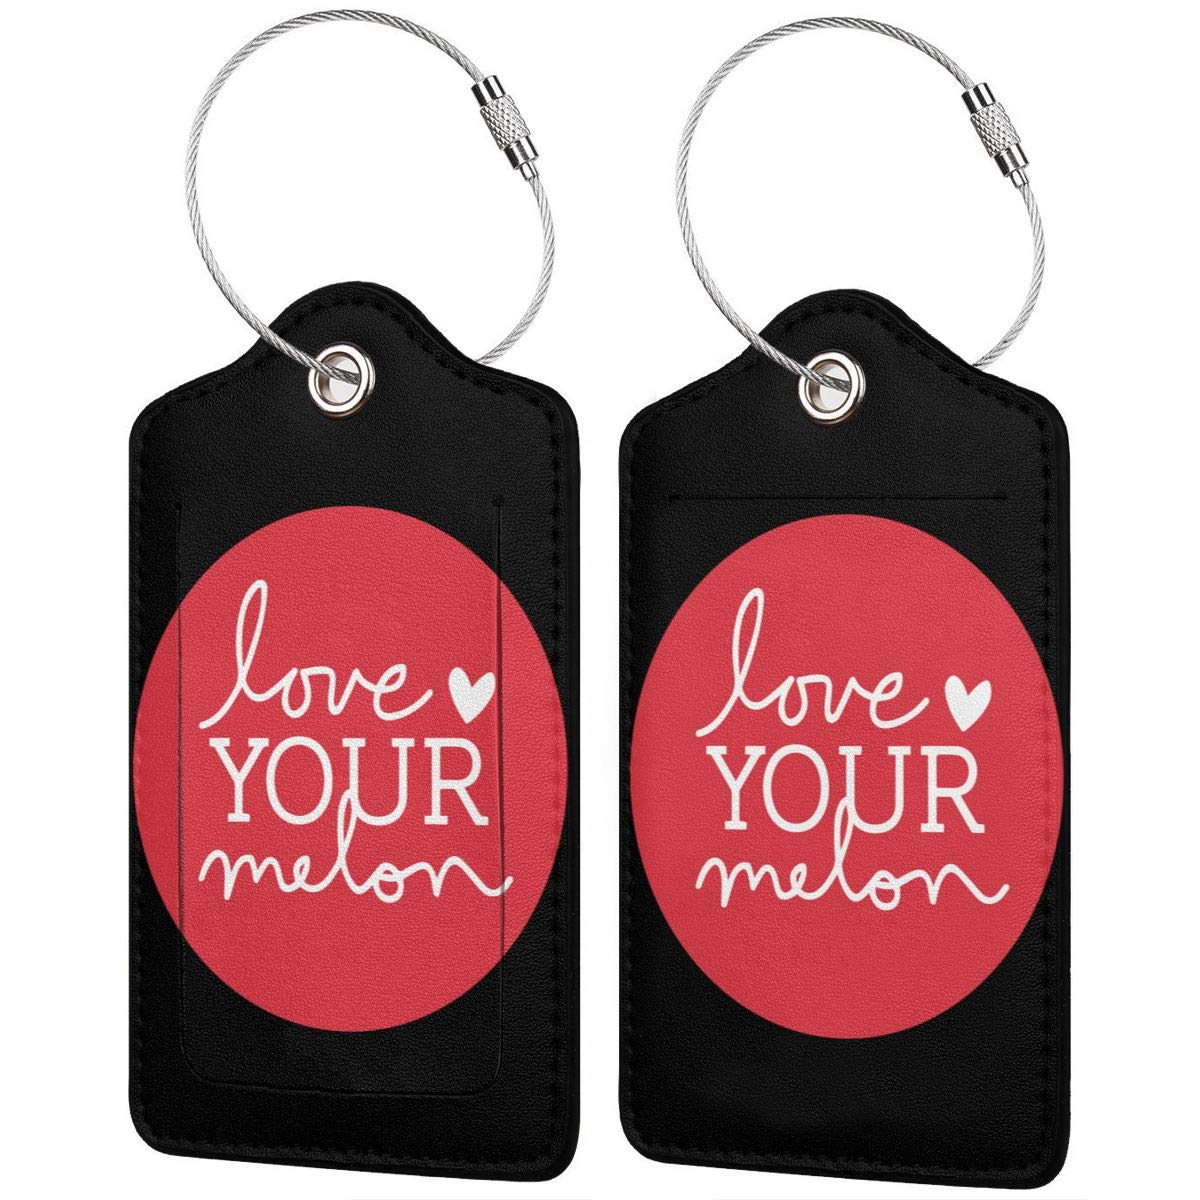 Love Your Melon Heart Labels With Privacy Cover For Travel Bag Suitcase Travel Accessory Luggage ID Tag